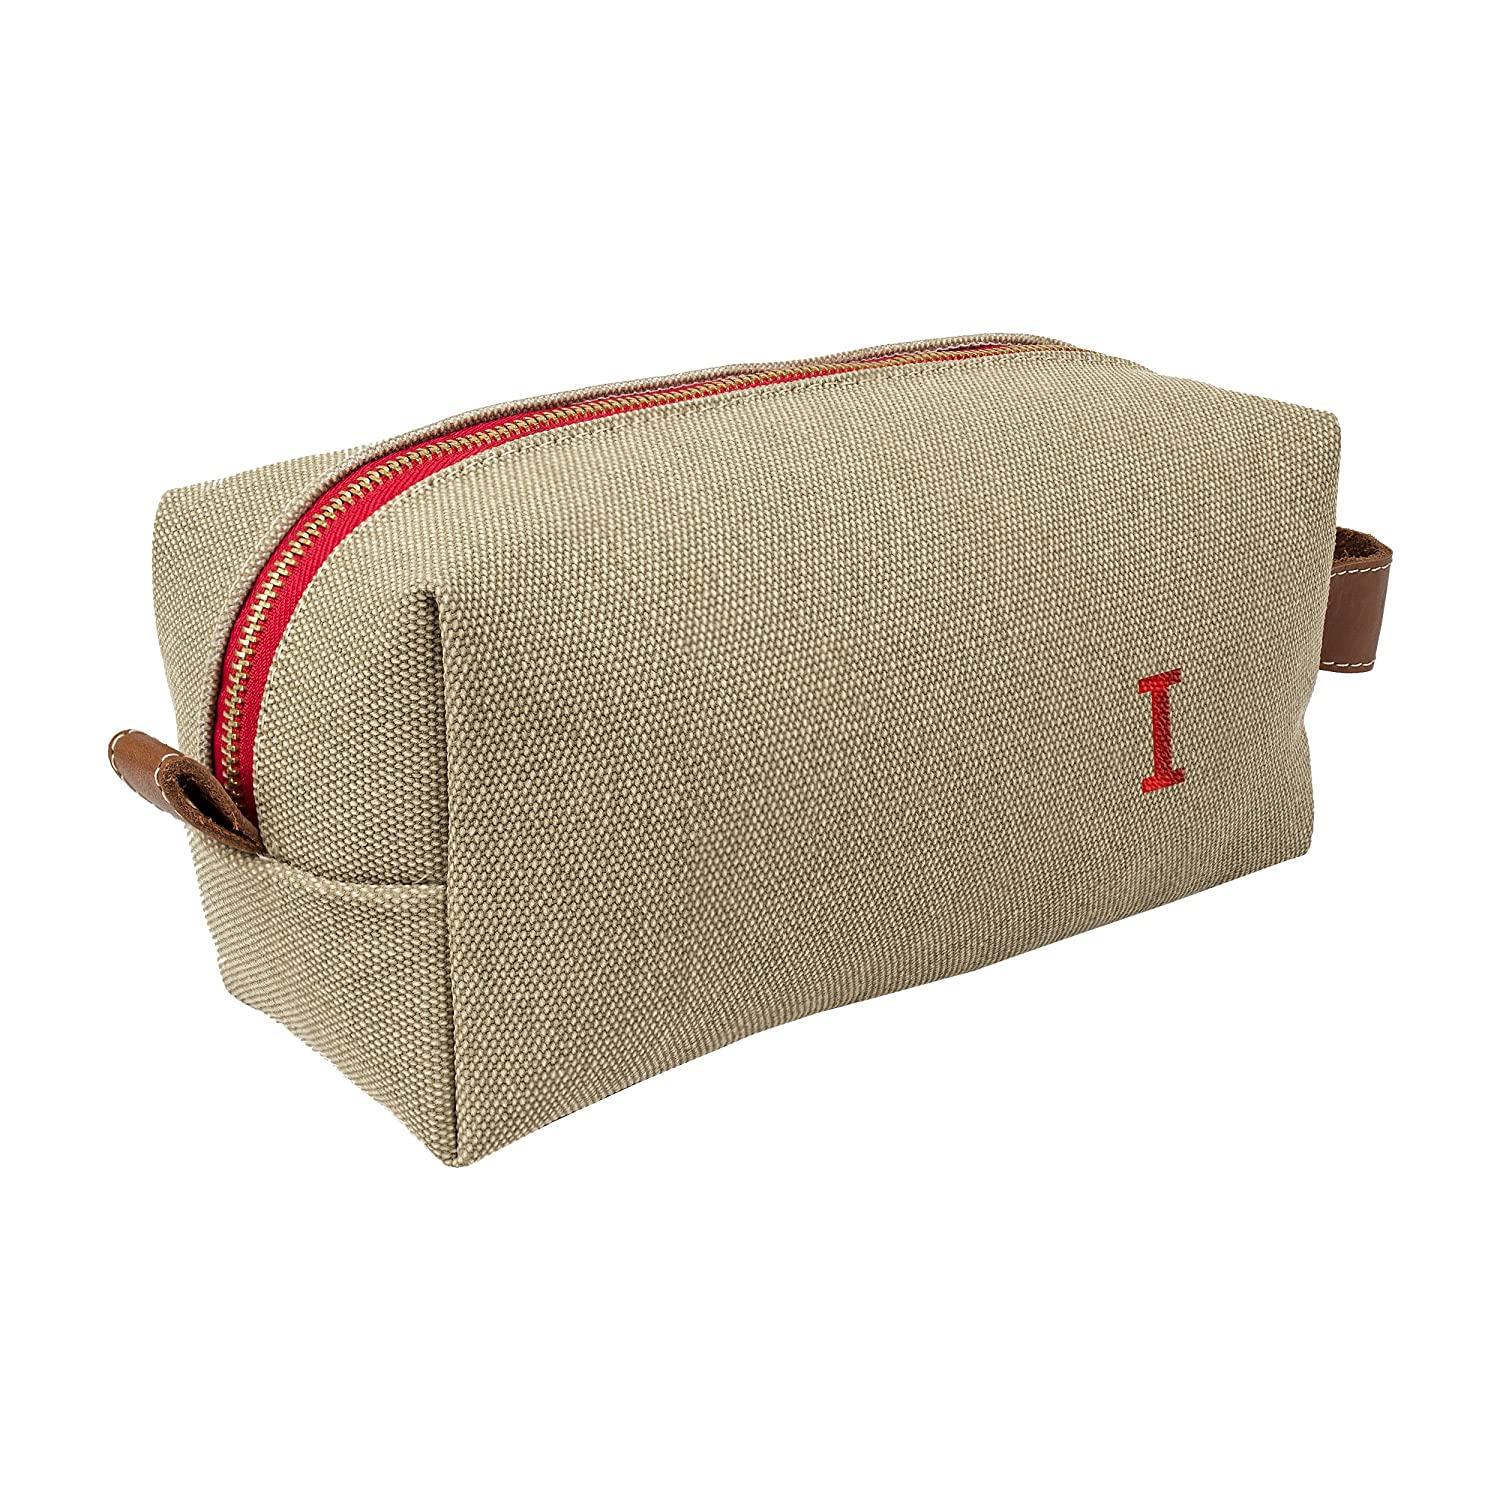 69bc132d07f1 Amazon.com  Cathy s Concepts Personalized Waxed Canvas   Leather Dopp Kit